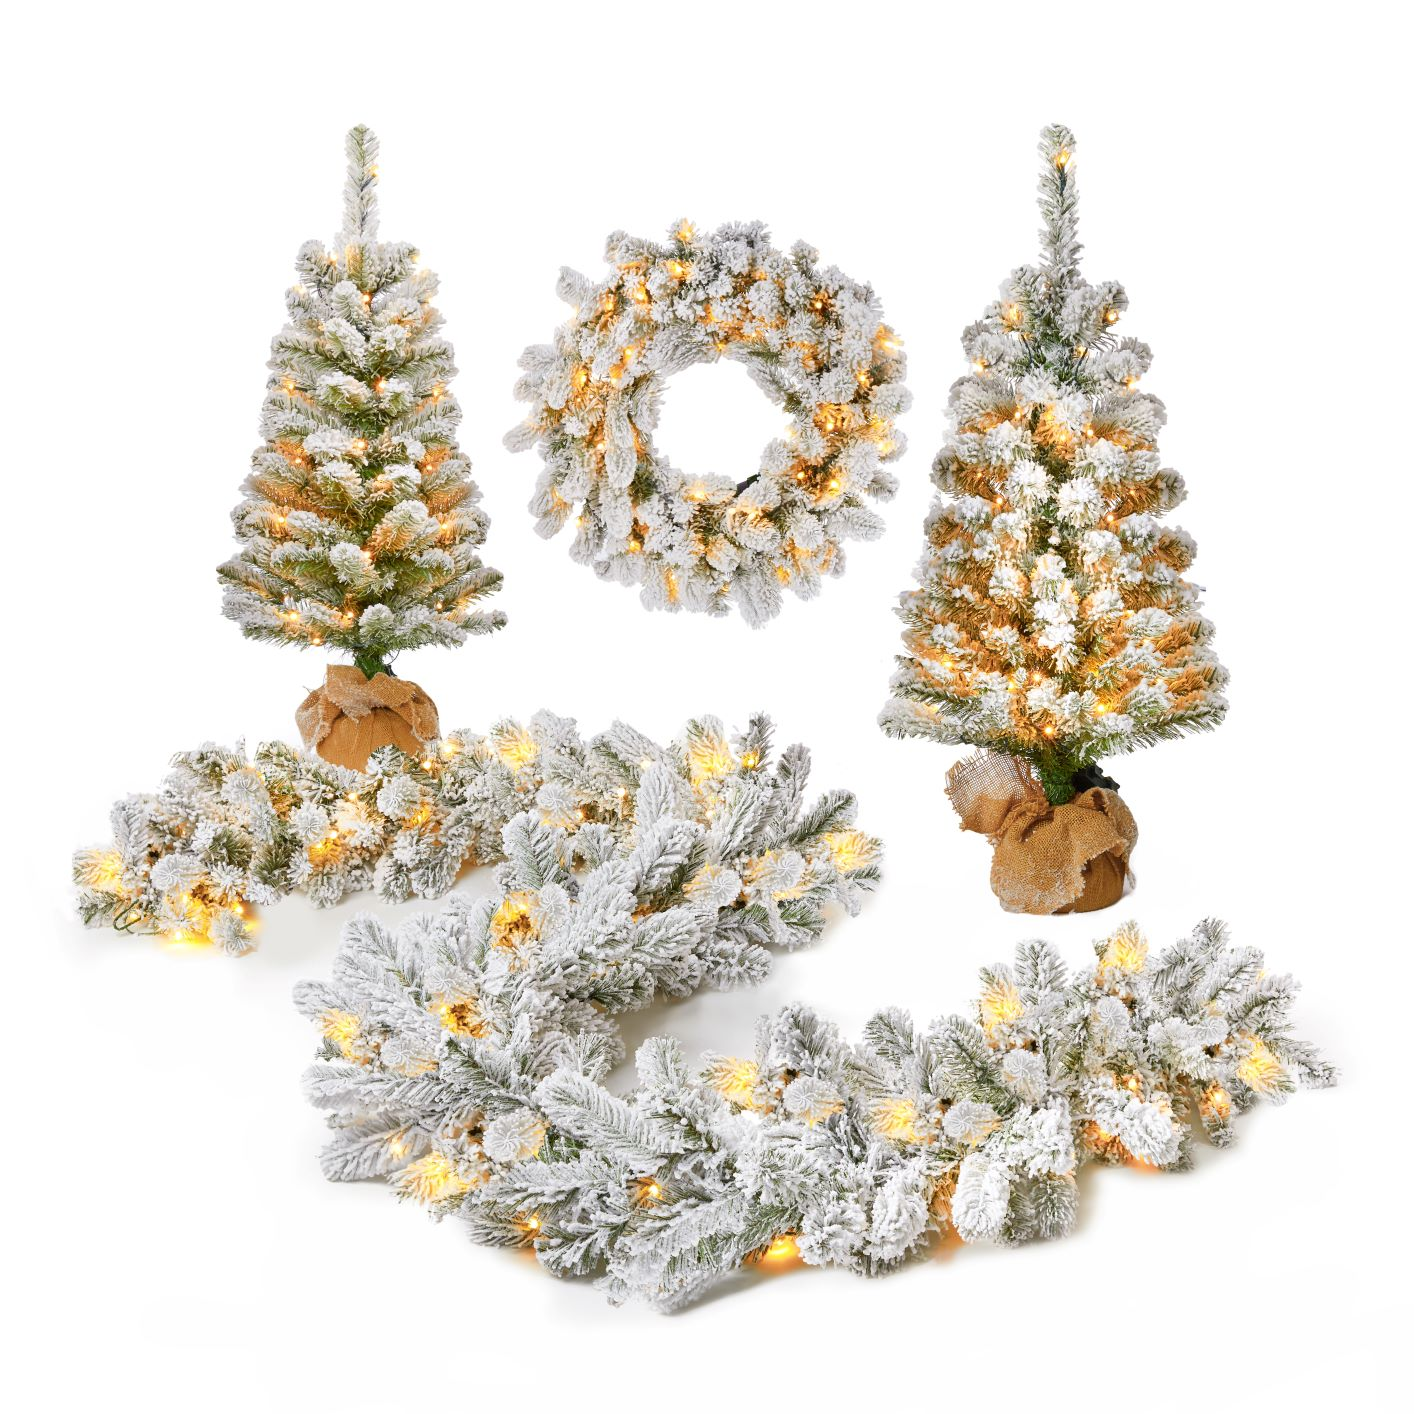 King Flock Collections(1x24'' Wreath, 1x 9'x12'' Garland and 2x3' Entrance Trees Bag) Warm Whie LED Lights (Battery Operated)